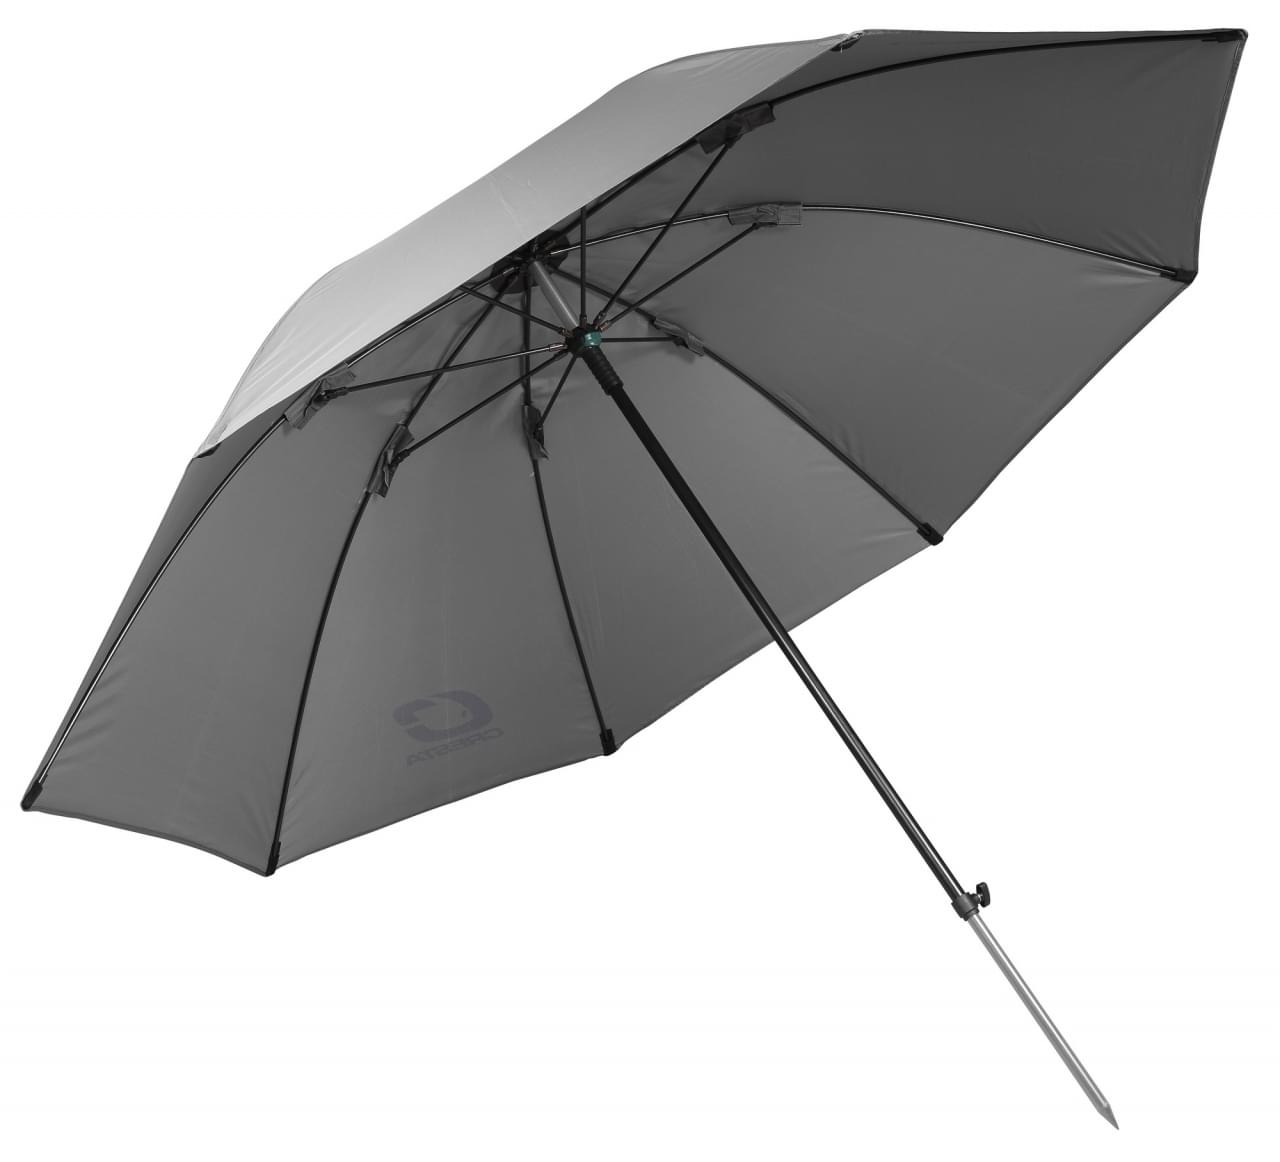 Cresta Long Pole Umbrella